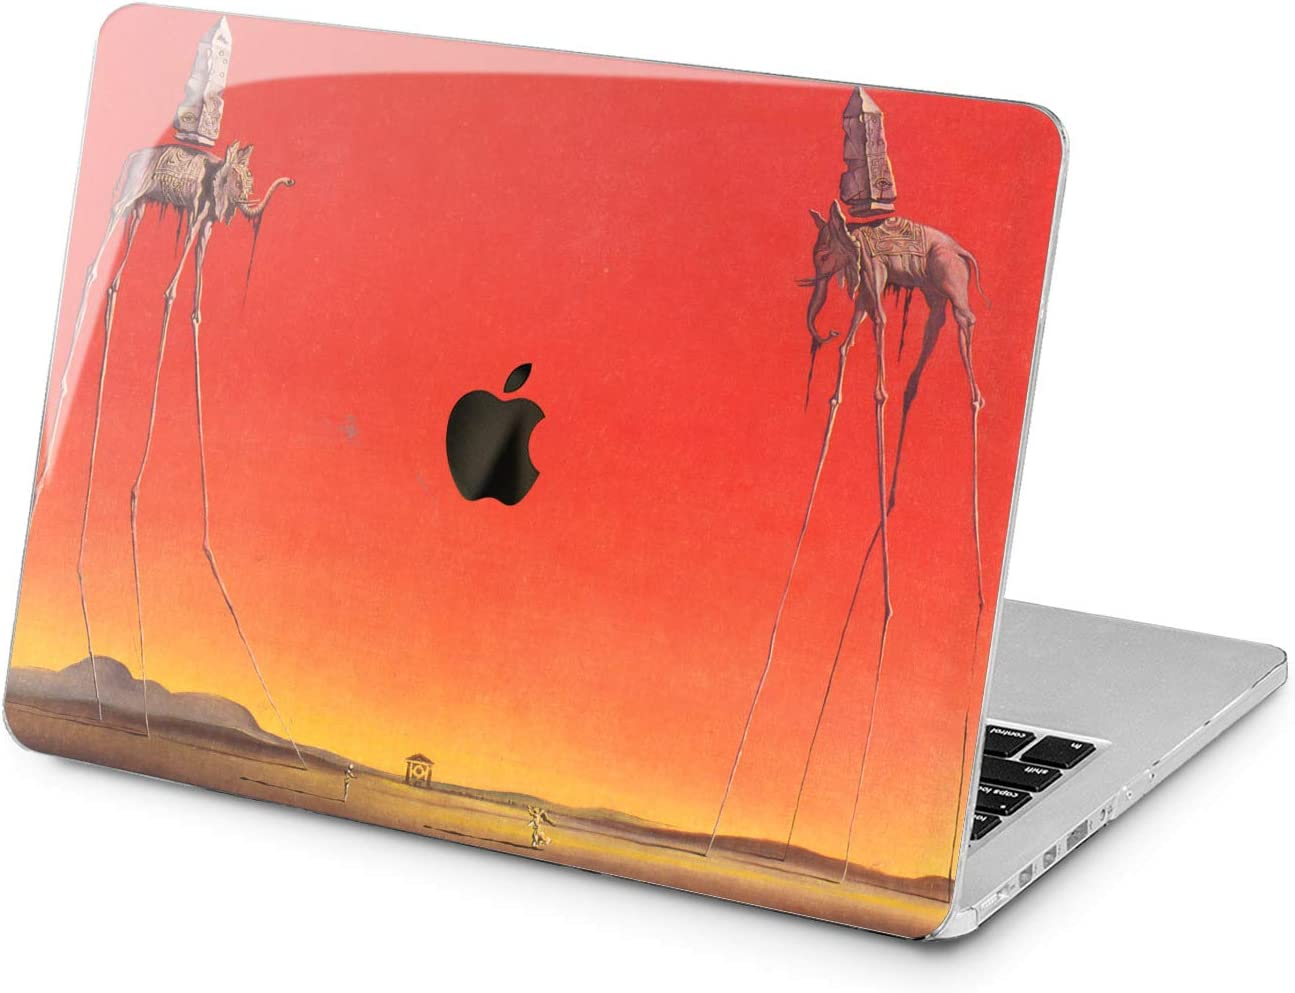 "Cavka Hard Shell Case for Apple MacBook Pro 13"" 2019 15"" 2018 Air 13"" 2020 Retina 2015 Mac 11"" Mac 12"" Protective Design Salvador Dali Cover Plastic Print The Elephants Stilts Yellow Surreal Laptop"